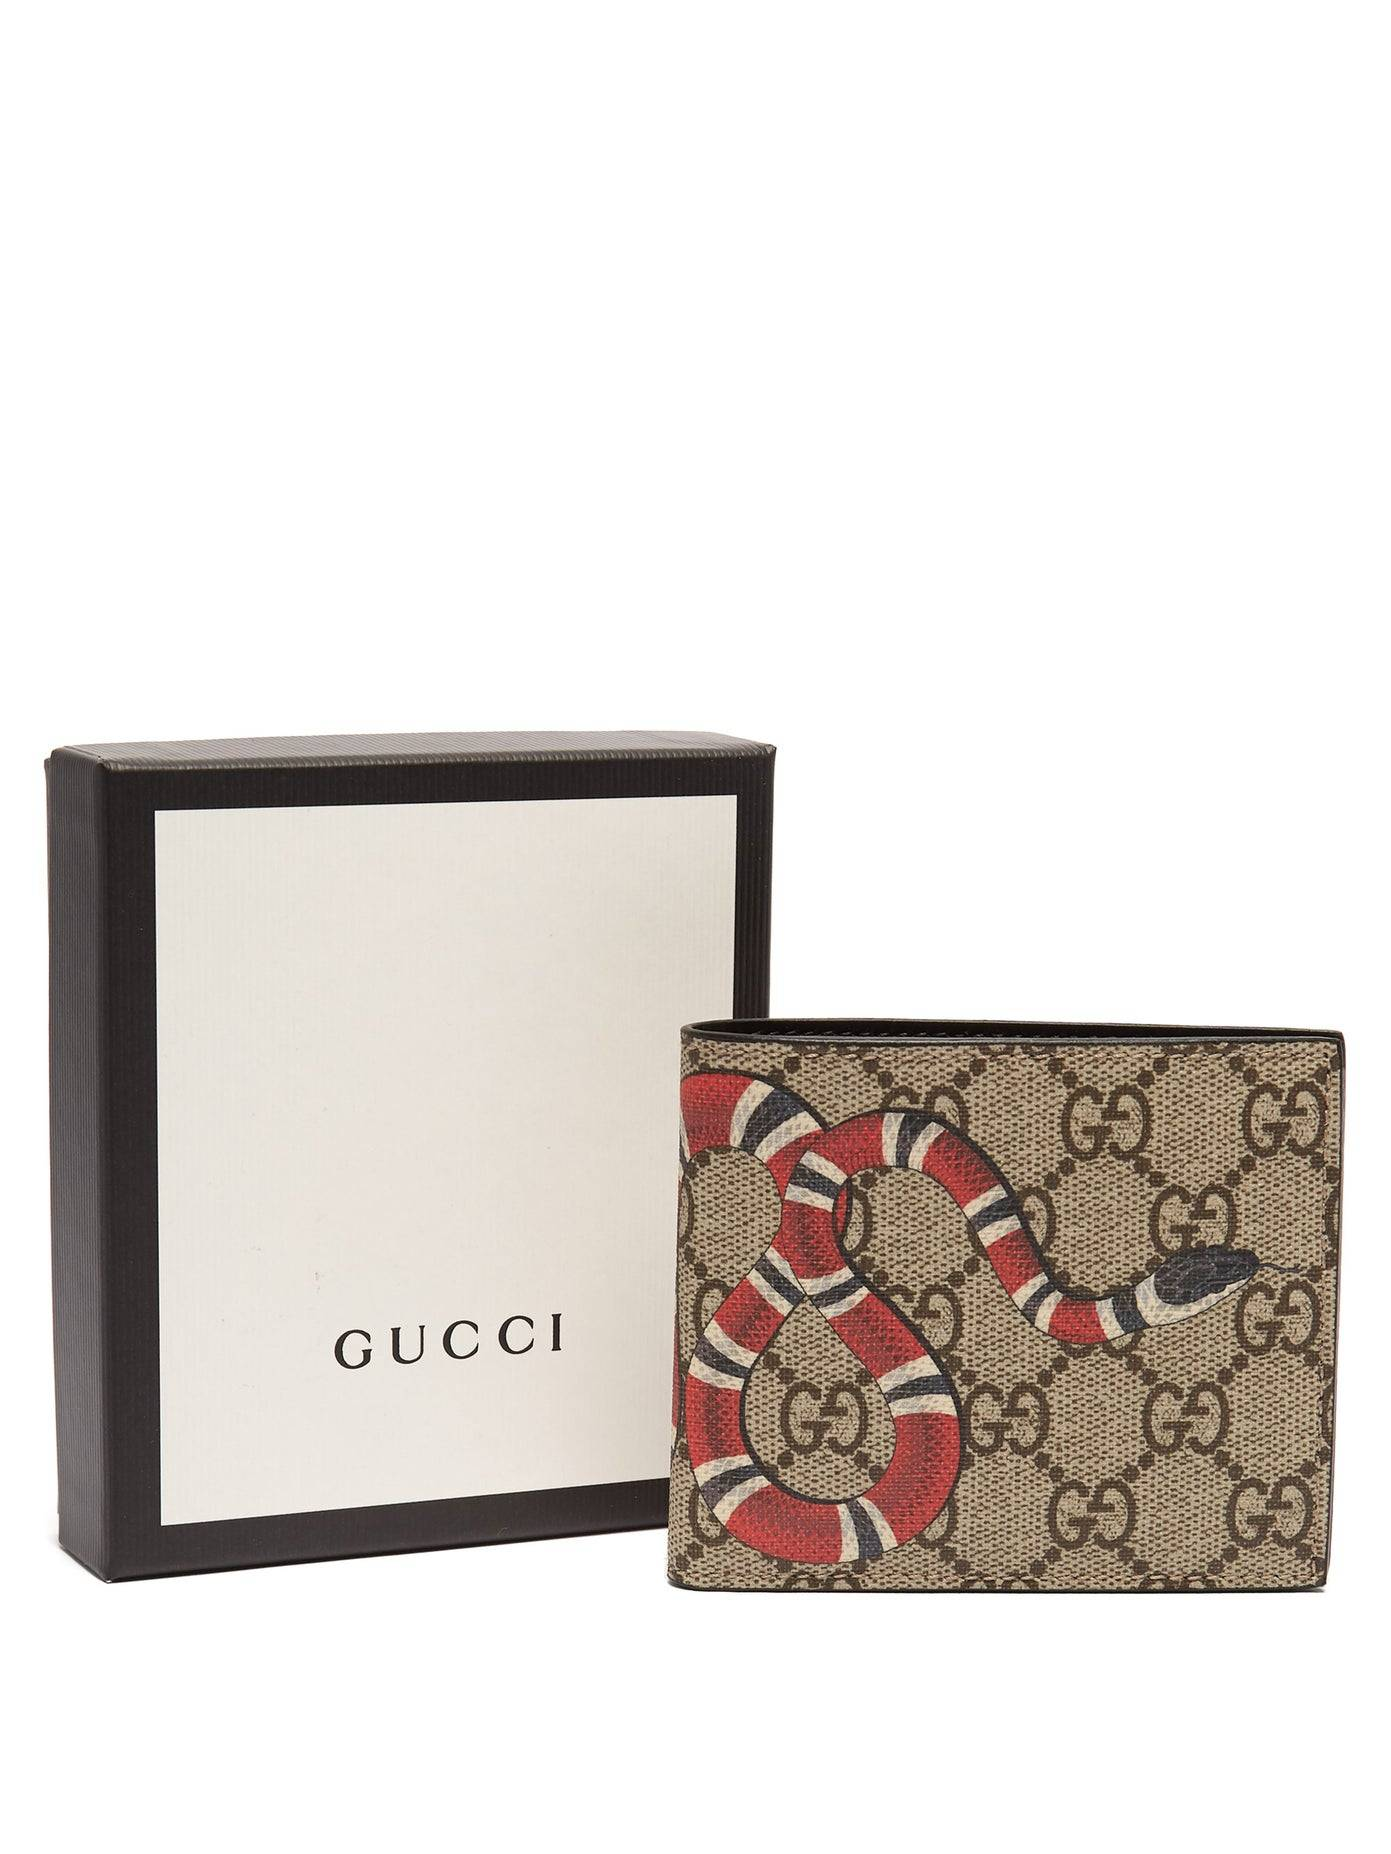 Gucci (available on https://www.matchesfashion.com/)